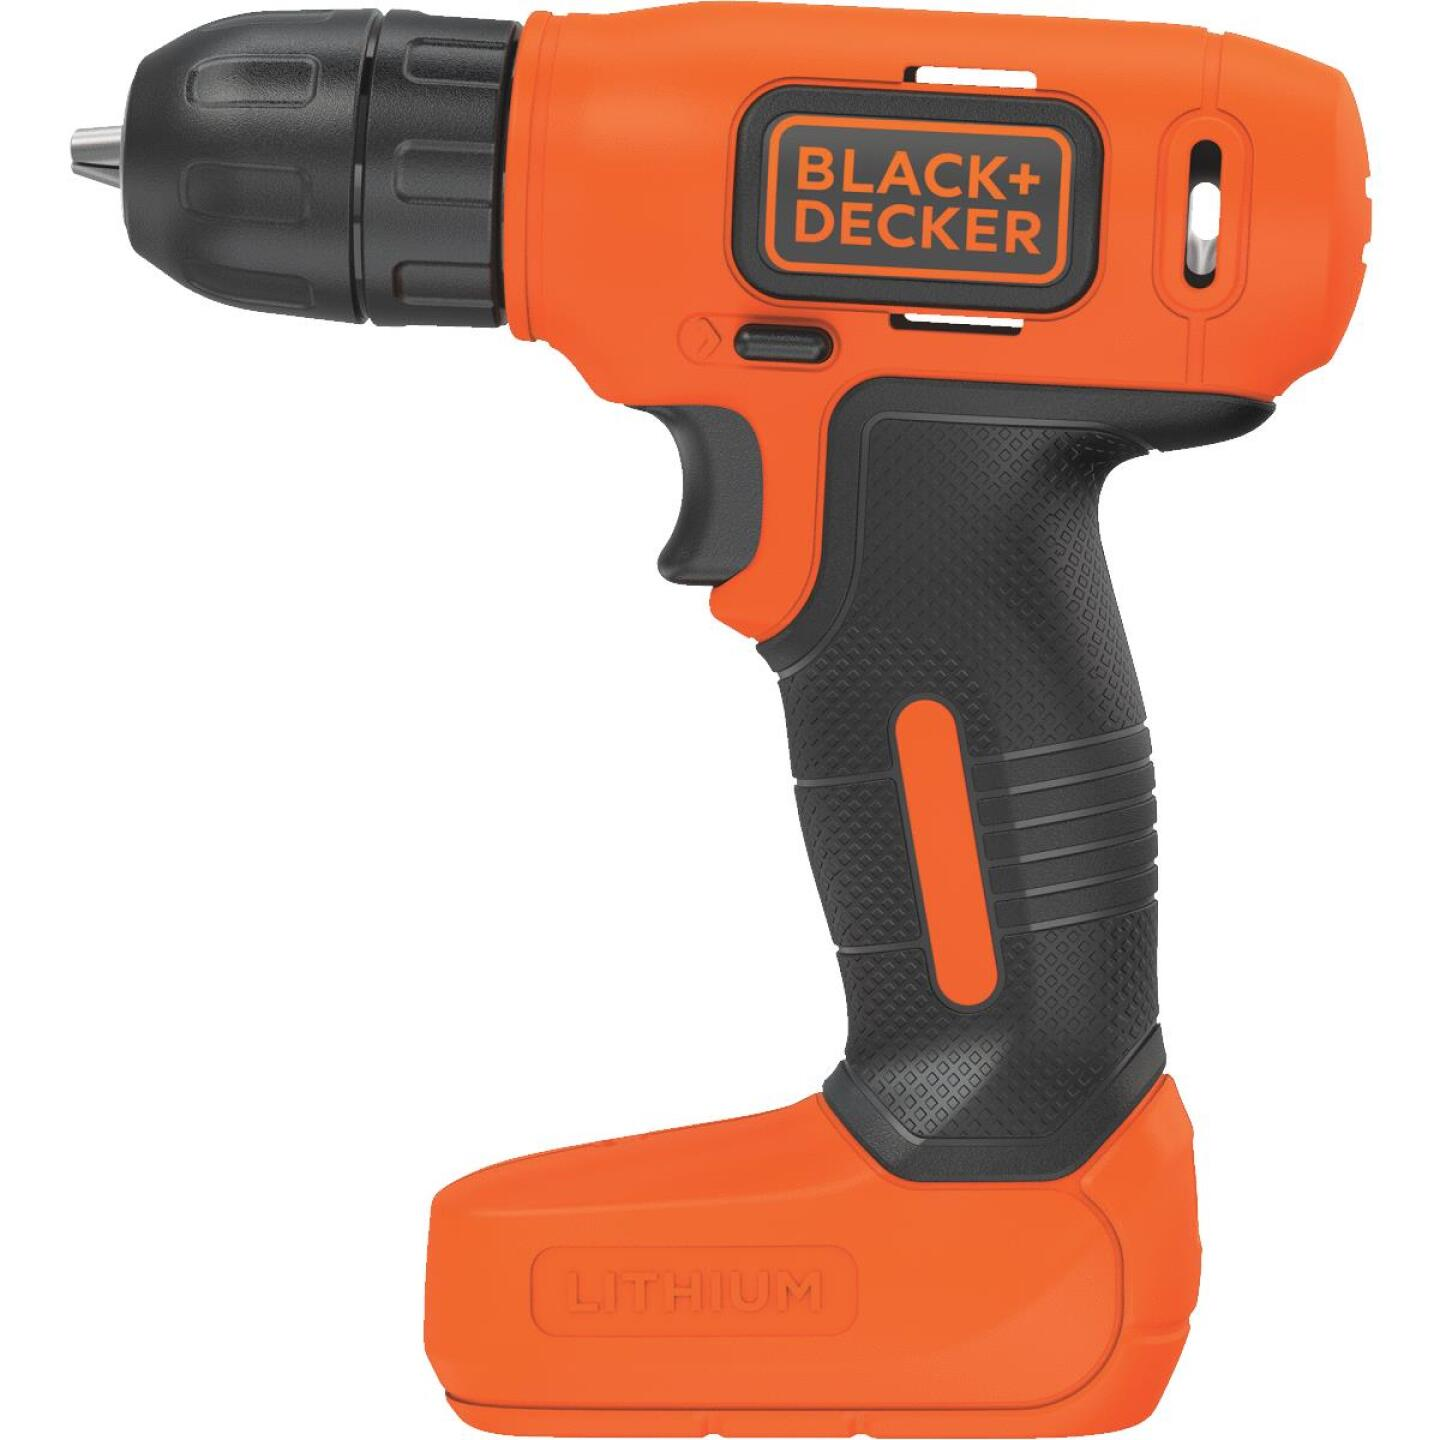 Black & Decker 8 Volt Lithium-Ion 3/8 In. Cordless Drill Kit Image 2